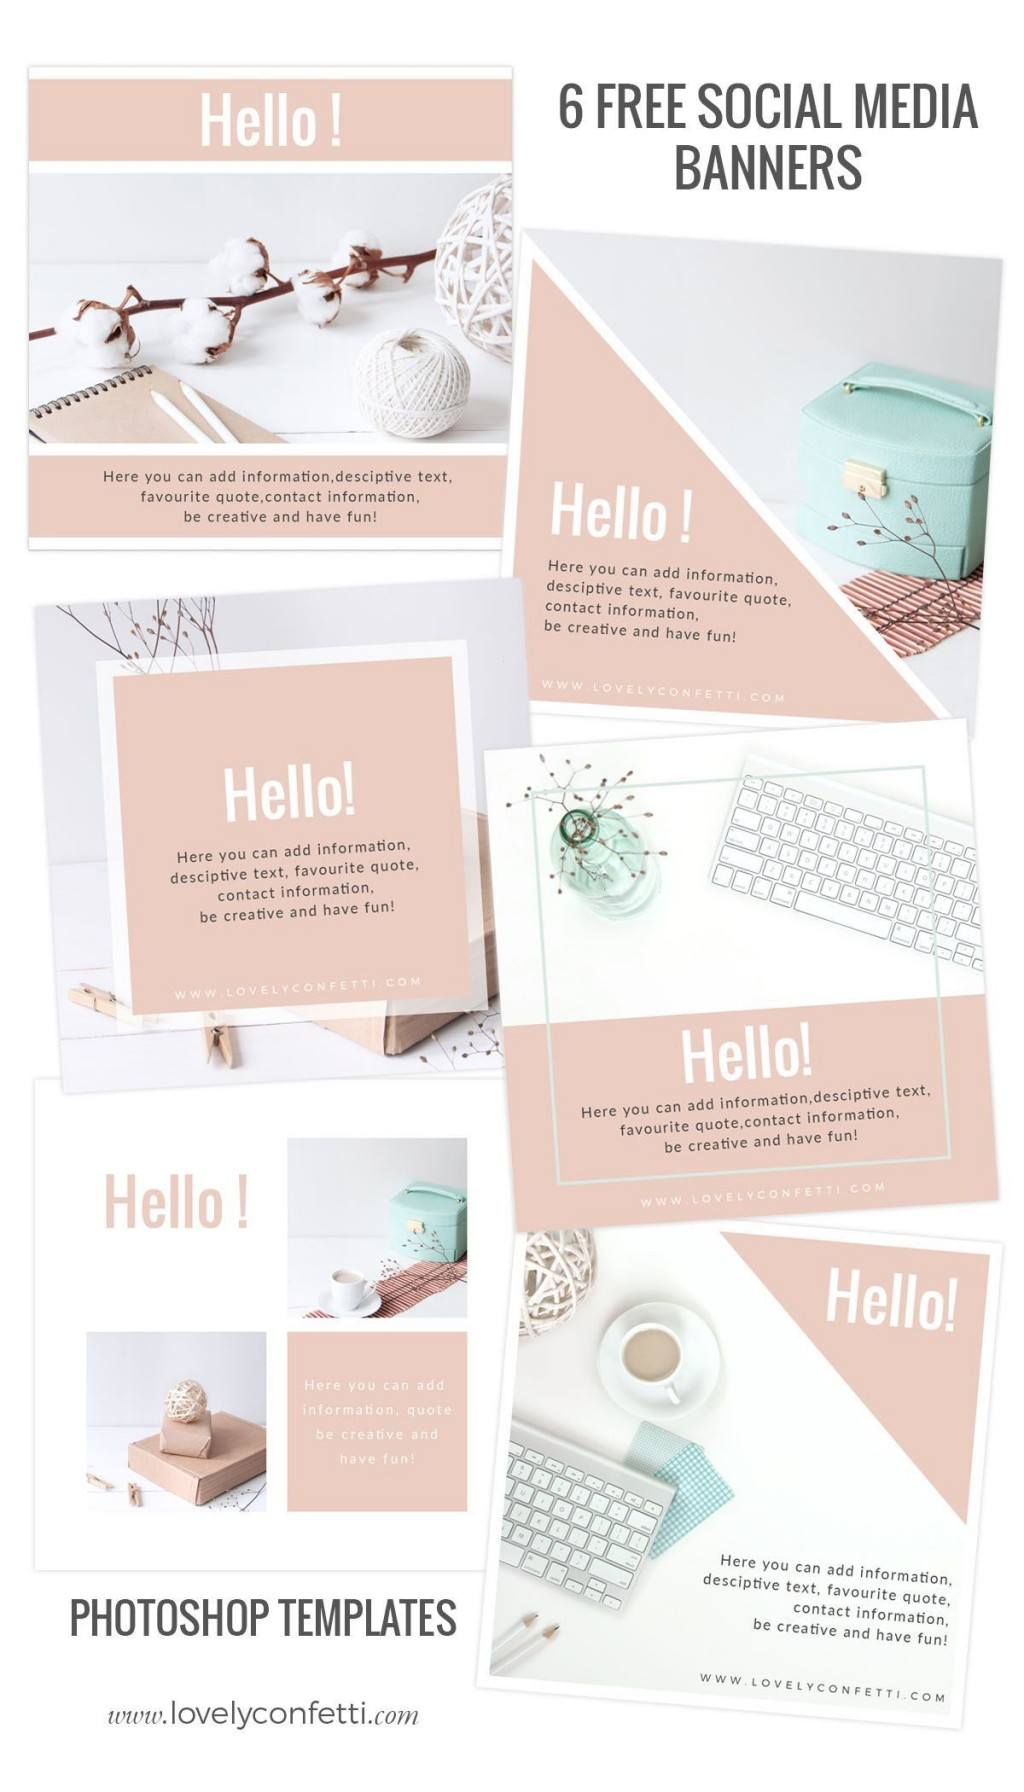 002 Stunning Social Media Template Free Download High Def  Lower Third CsLarge